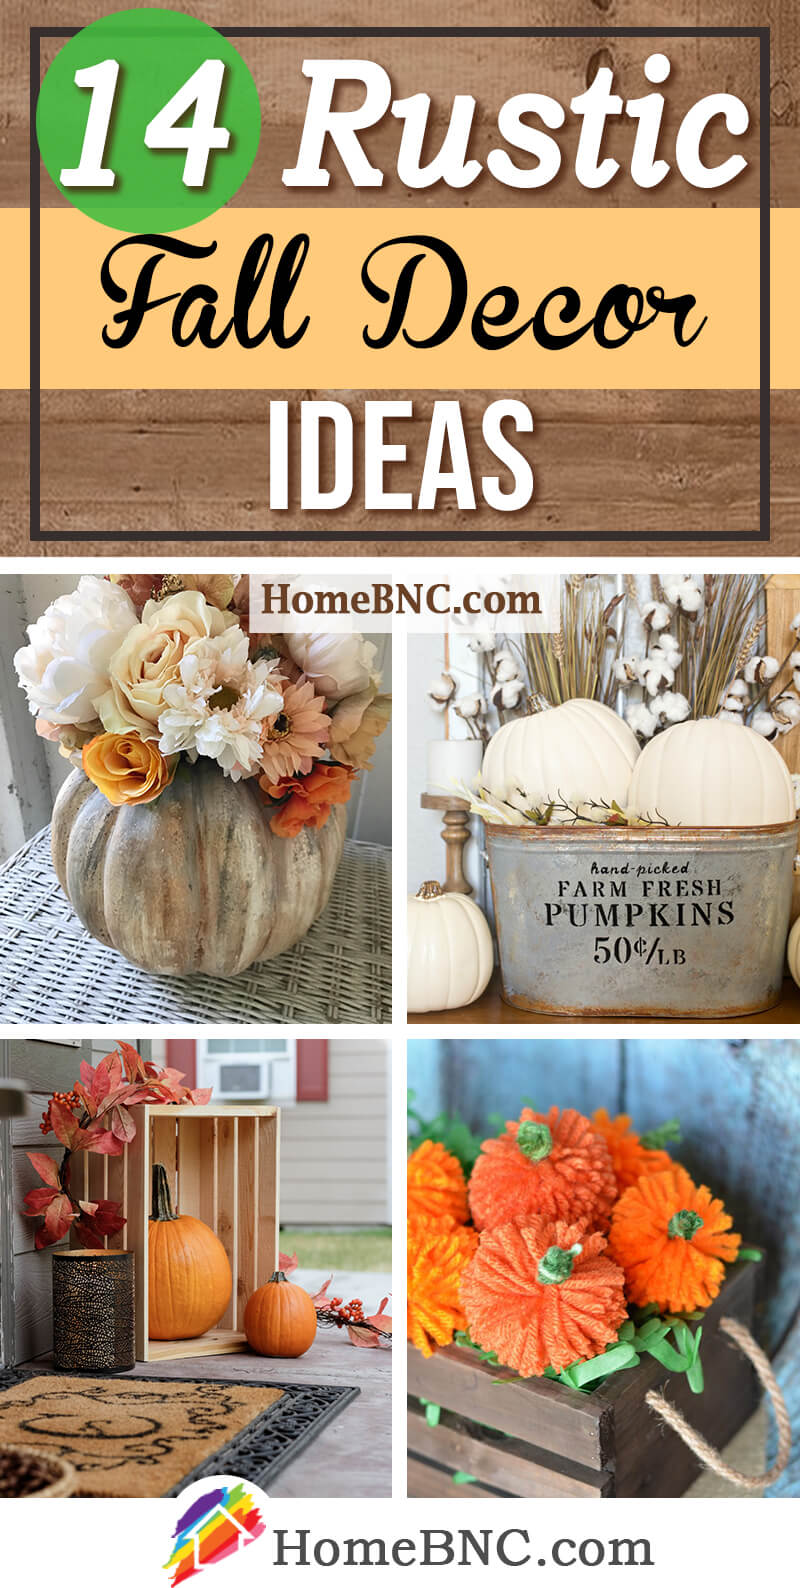 Rustic Fall Decor Design Ideas